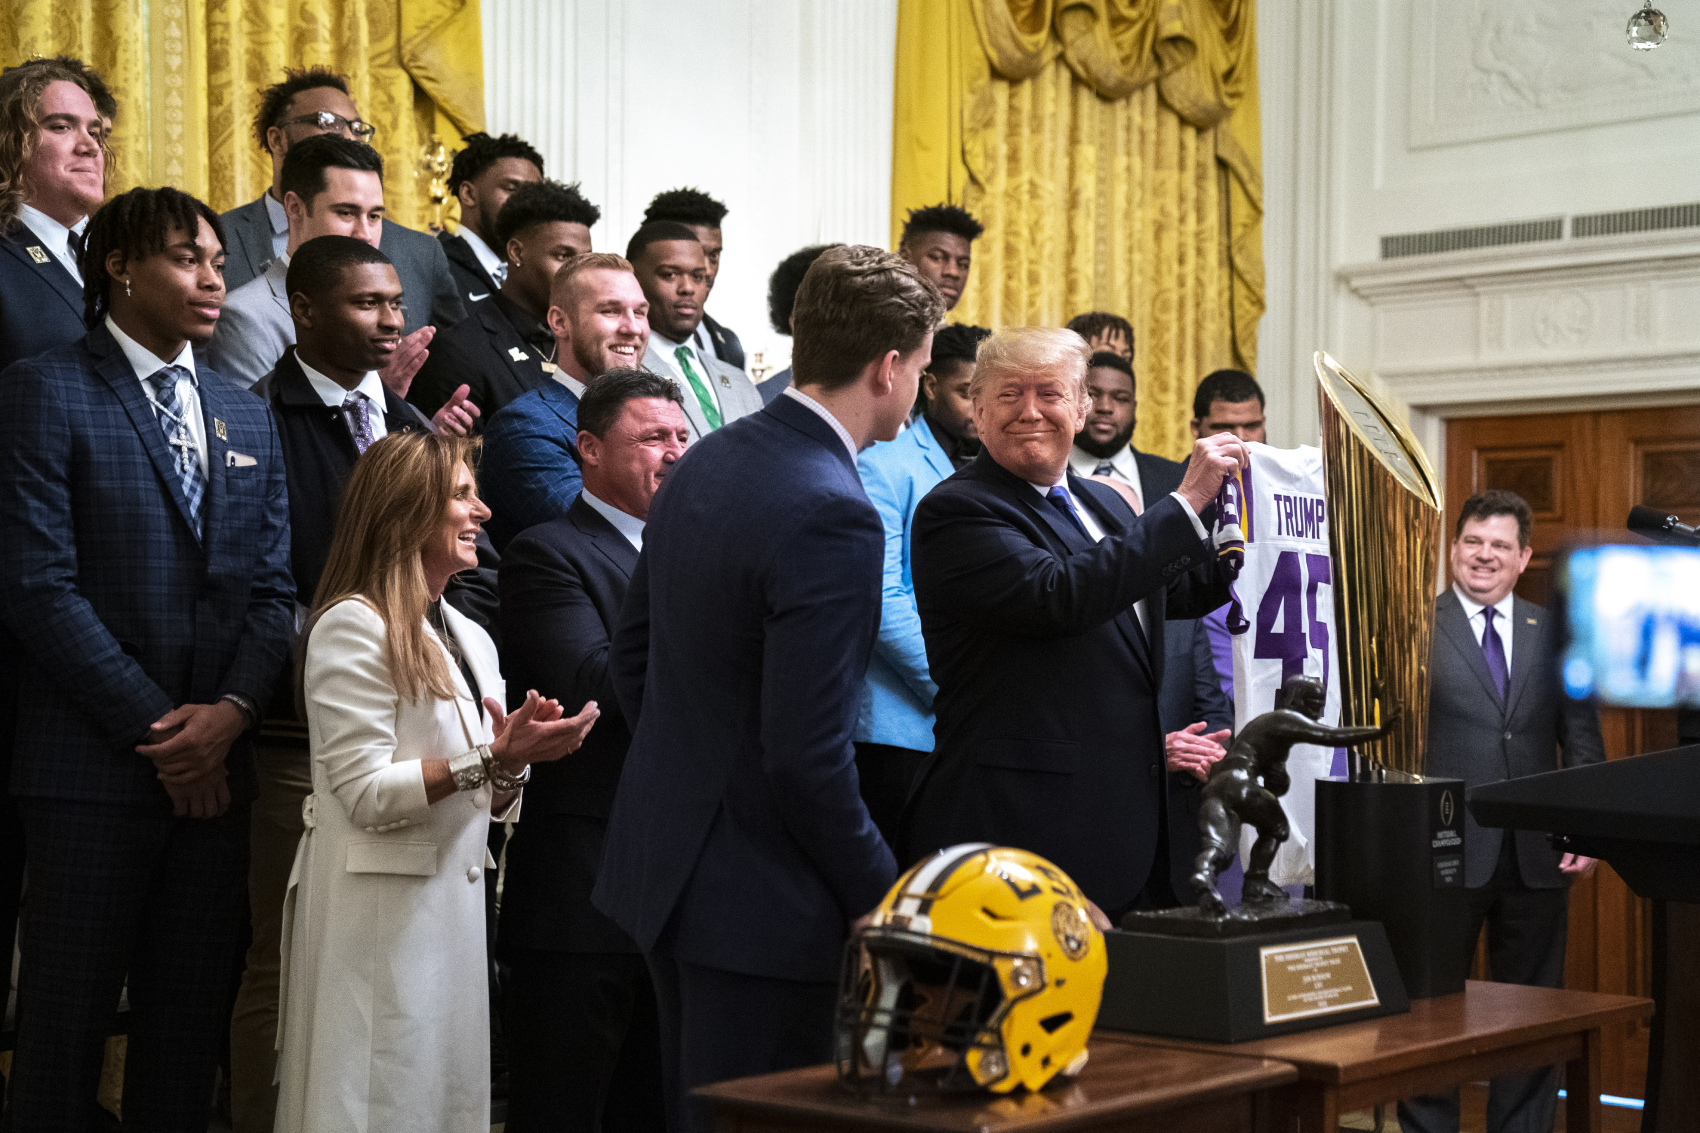 President Donald Trump talked about football in a conference call recently, and he made multiple false statements while discussing it.